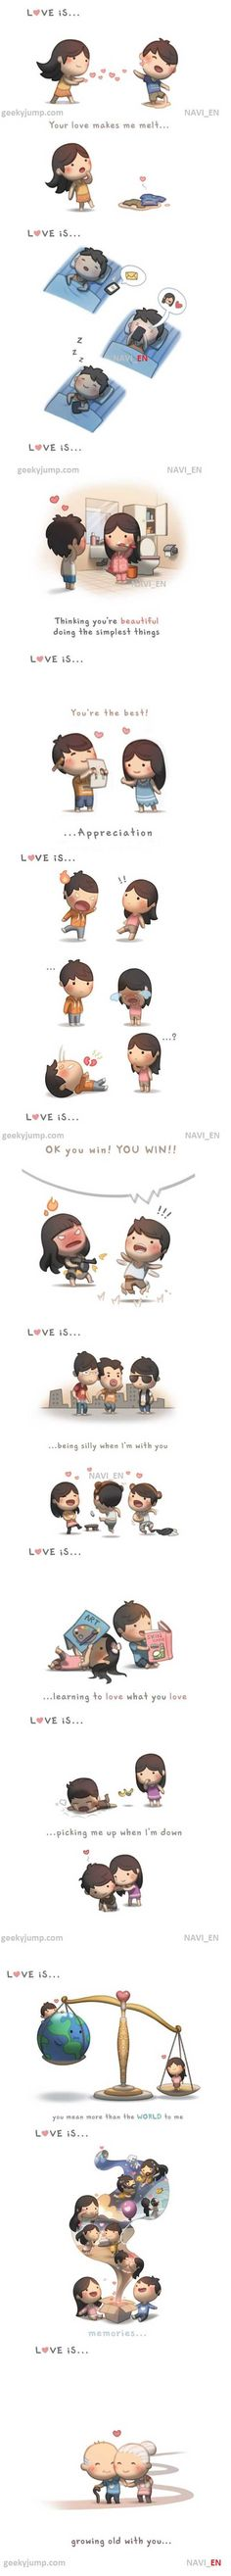 Funny Couple Cartoon Relationships Love Is 47 Ideas New Quotes, Funny Quotes, Inspirational Quotes, Preach Quotes, Music Quotes, Cute Love Stories, Love Story, Hj Story, Ah O Amor